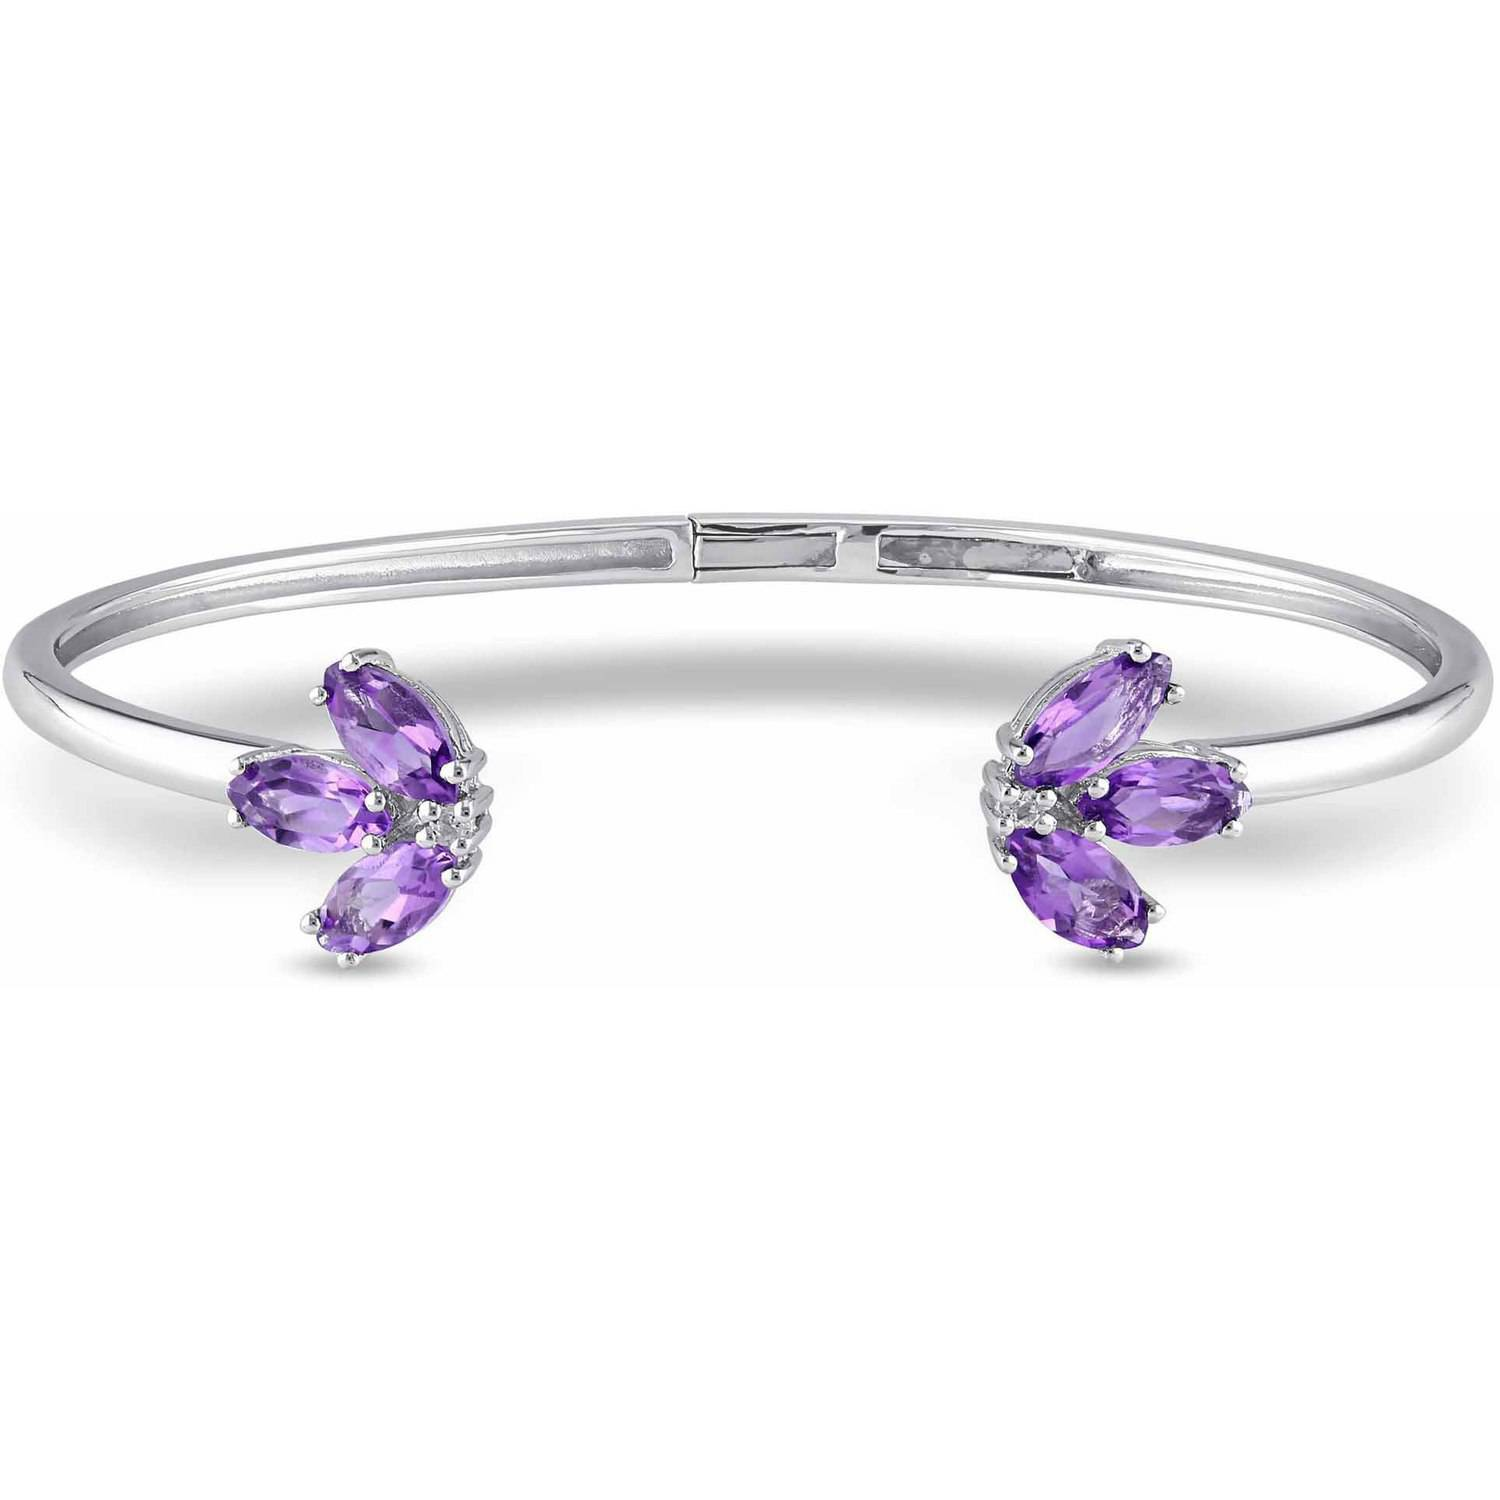 "Tangelo 2 Carat T.G.W. Amethyst and White Topaz Cuff Bangle Sterling Silver Bracelet, 7"" by"